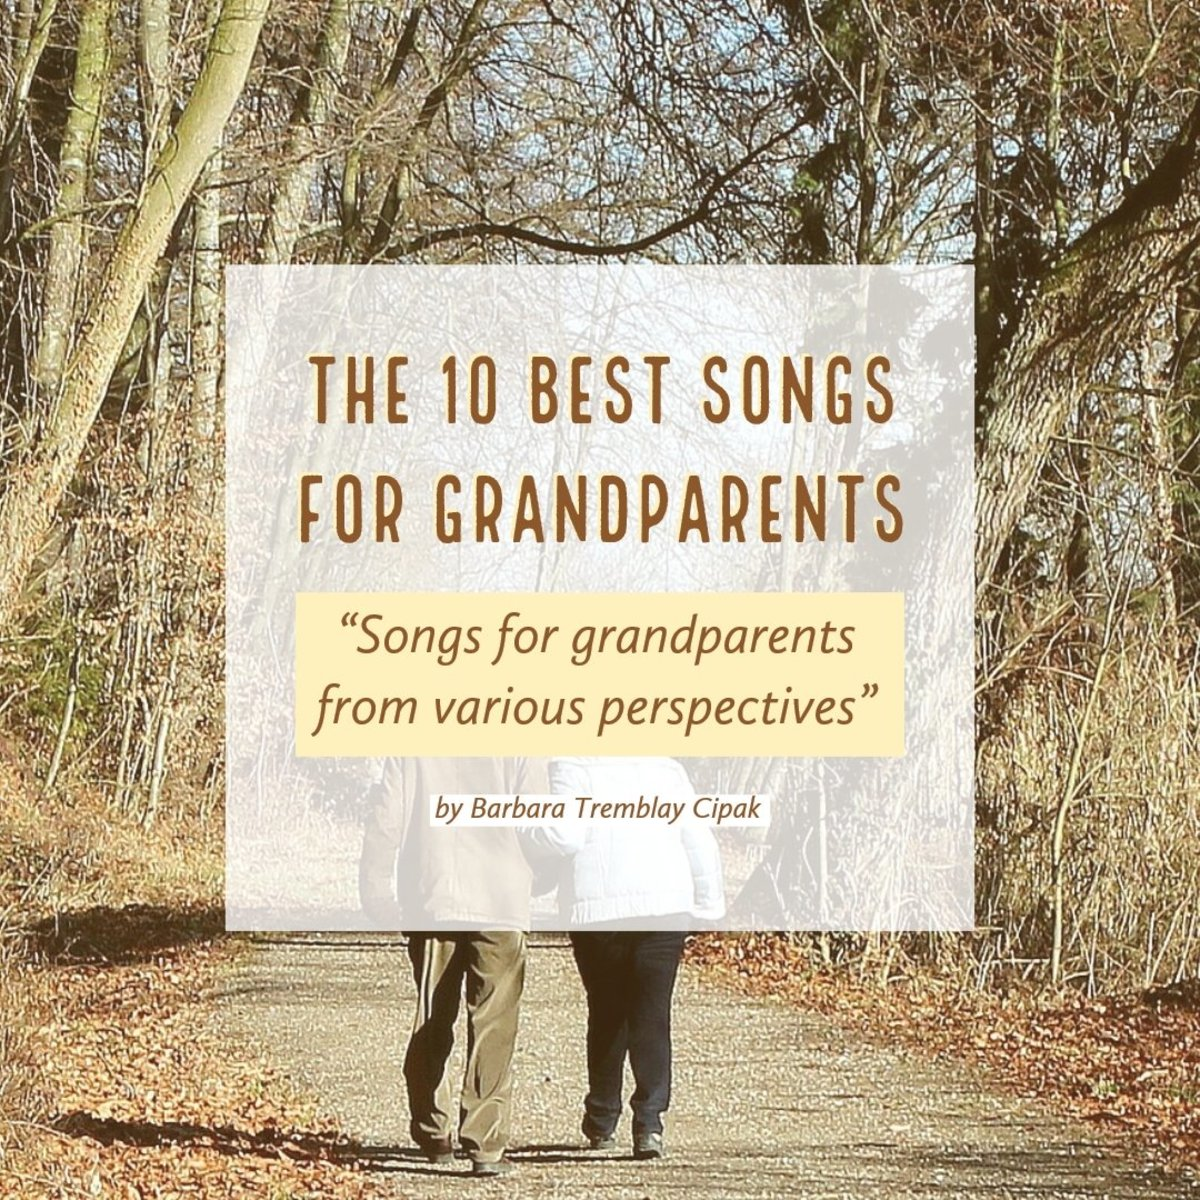 The 10 Best Songs for Grandparents   Spinditty